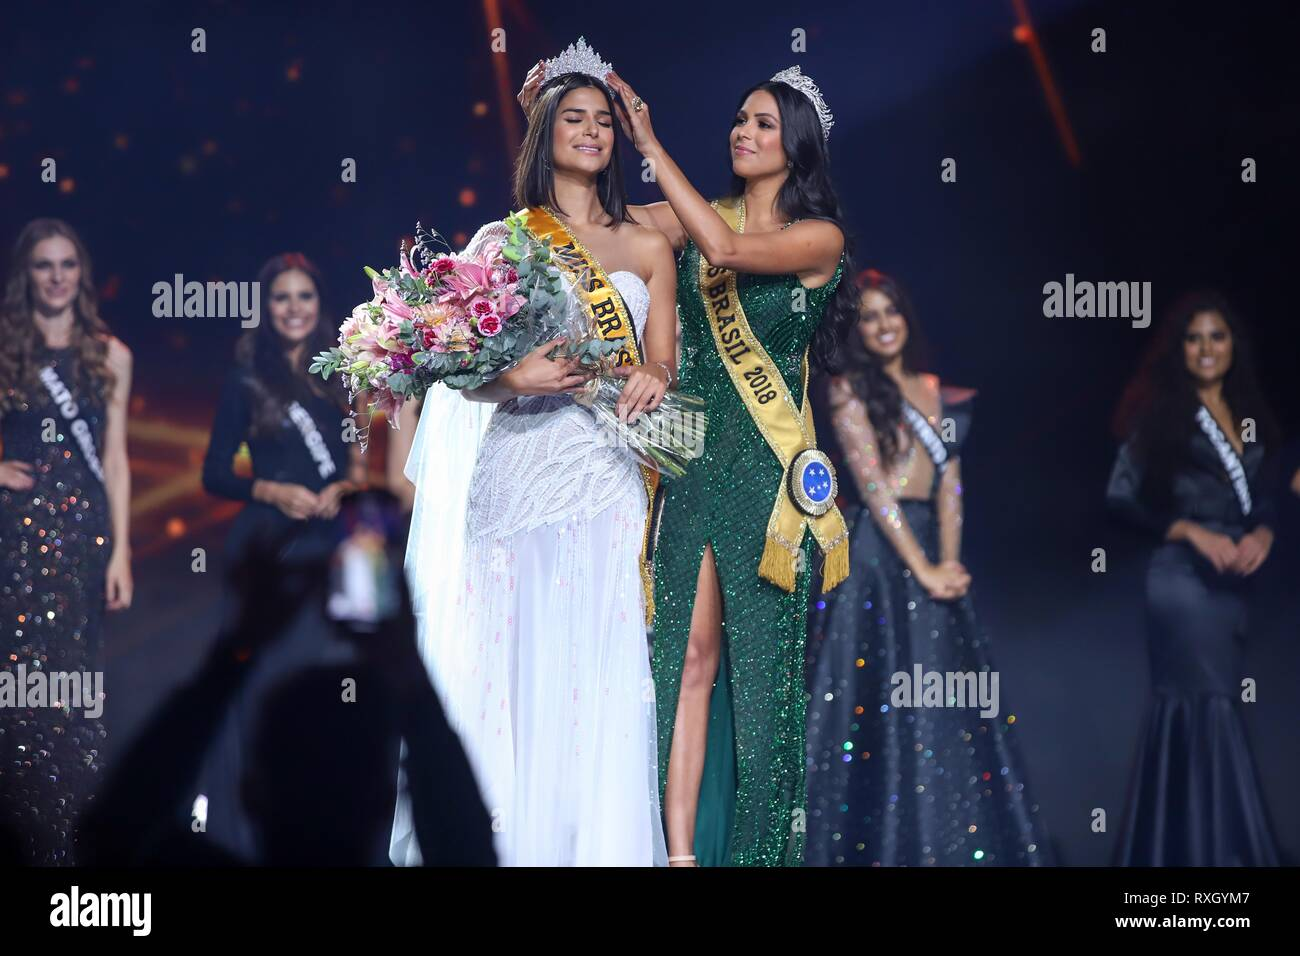 Sao Paulo, Brazil. 9th March 2019. Winner of Miss Brazil Julia Horta of 24 years Miss Minas Gerais and Miss Brazil 2018 Mayra Dias (of green) Be Emotion during contest Miss Brazil Be Emotion in the exhibition center São Paulo Expo in the south region of the city of São Paulo, 09. Credit: William Volcov/ZUMA Wire/Alamy Live News - Stock Image